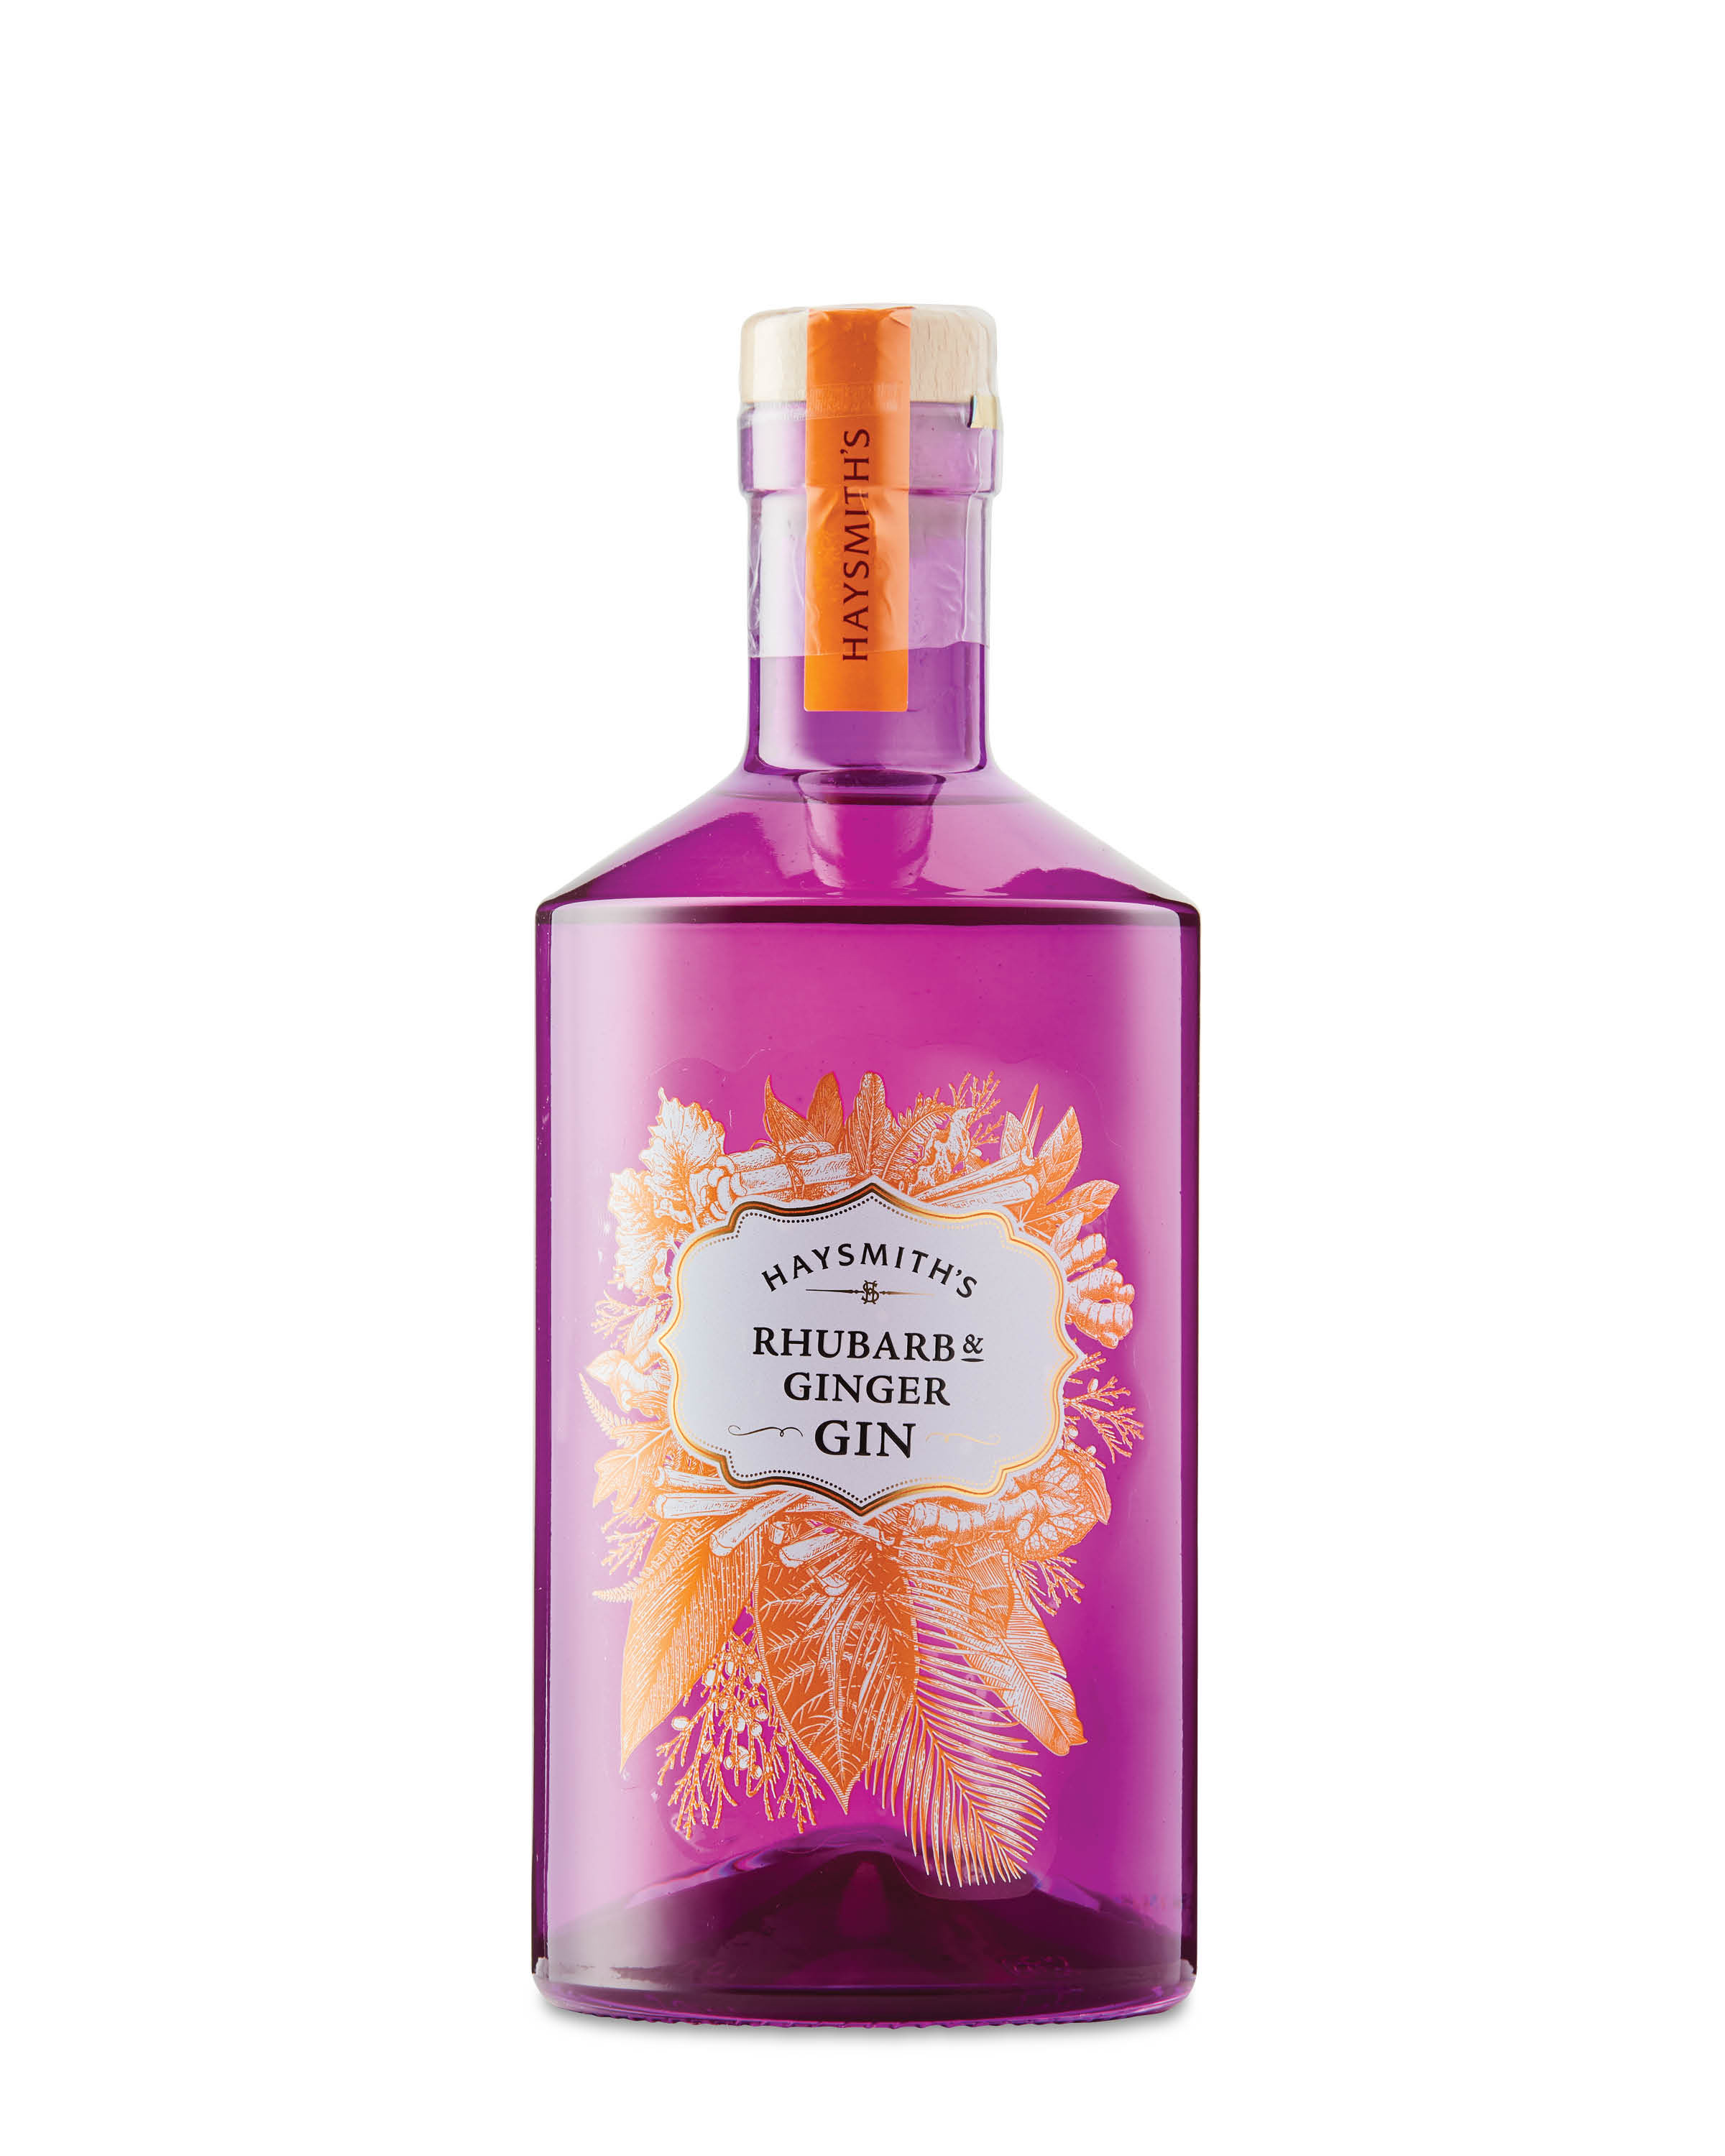 The Haysmith's Rhubarb and Ginger Gin retails at £14.99